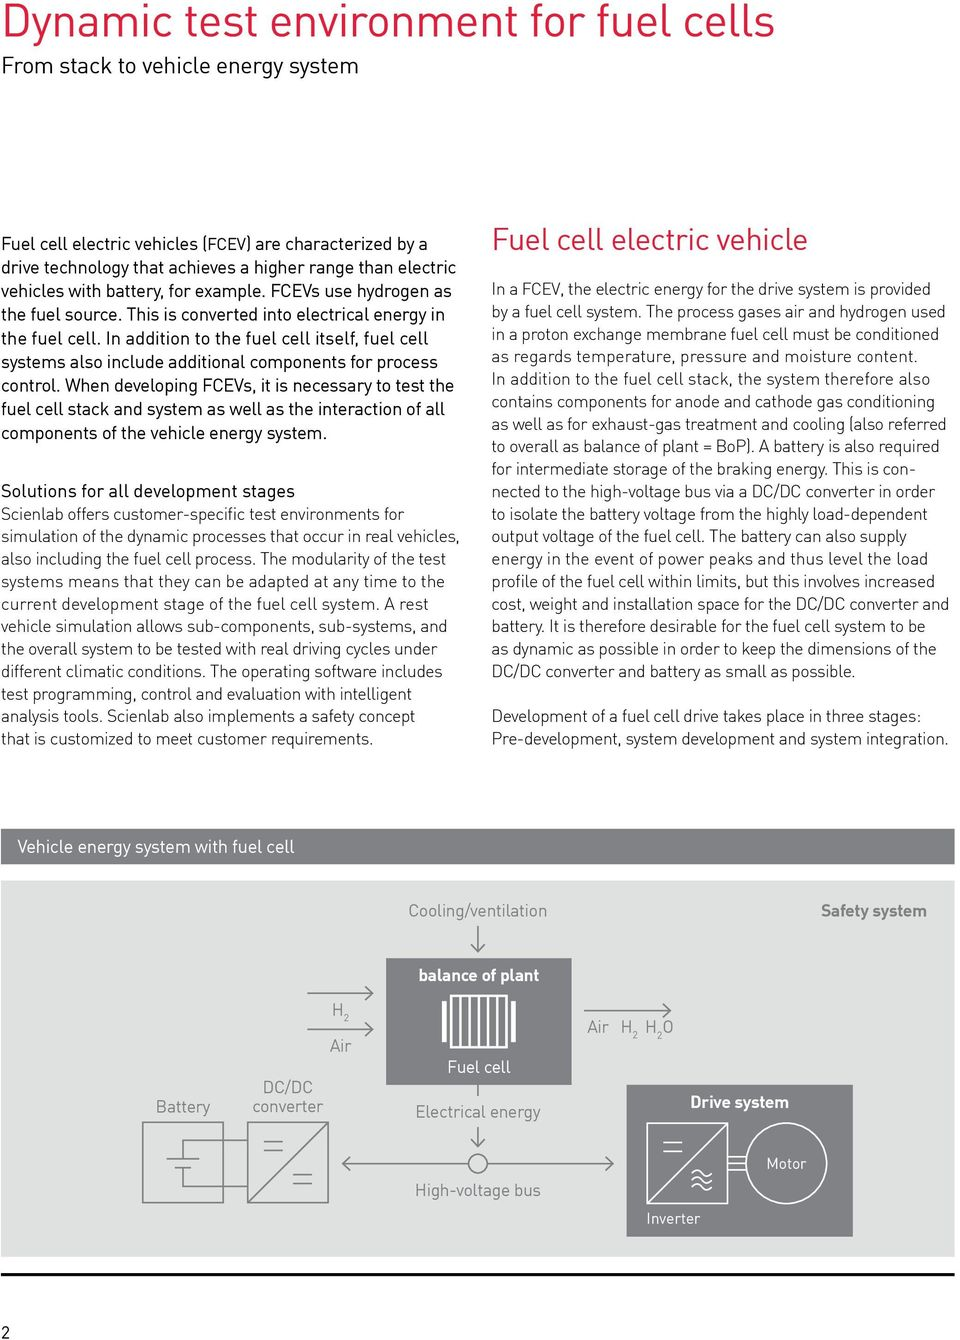 In addition to the fuel cell itself, fuel cell systems also include additional components for process control.